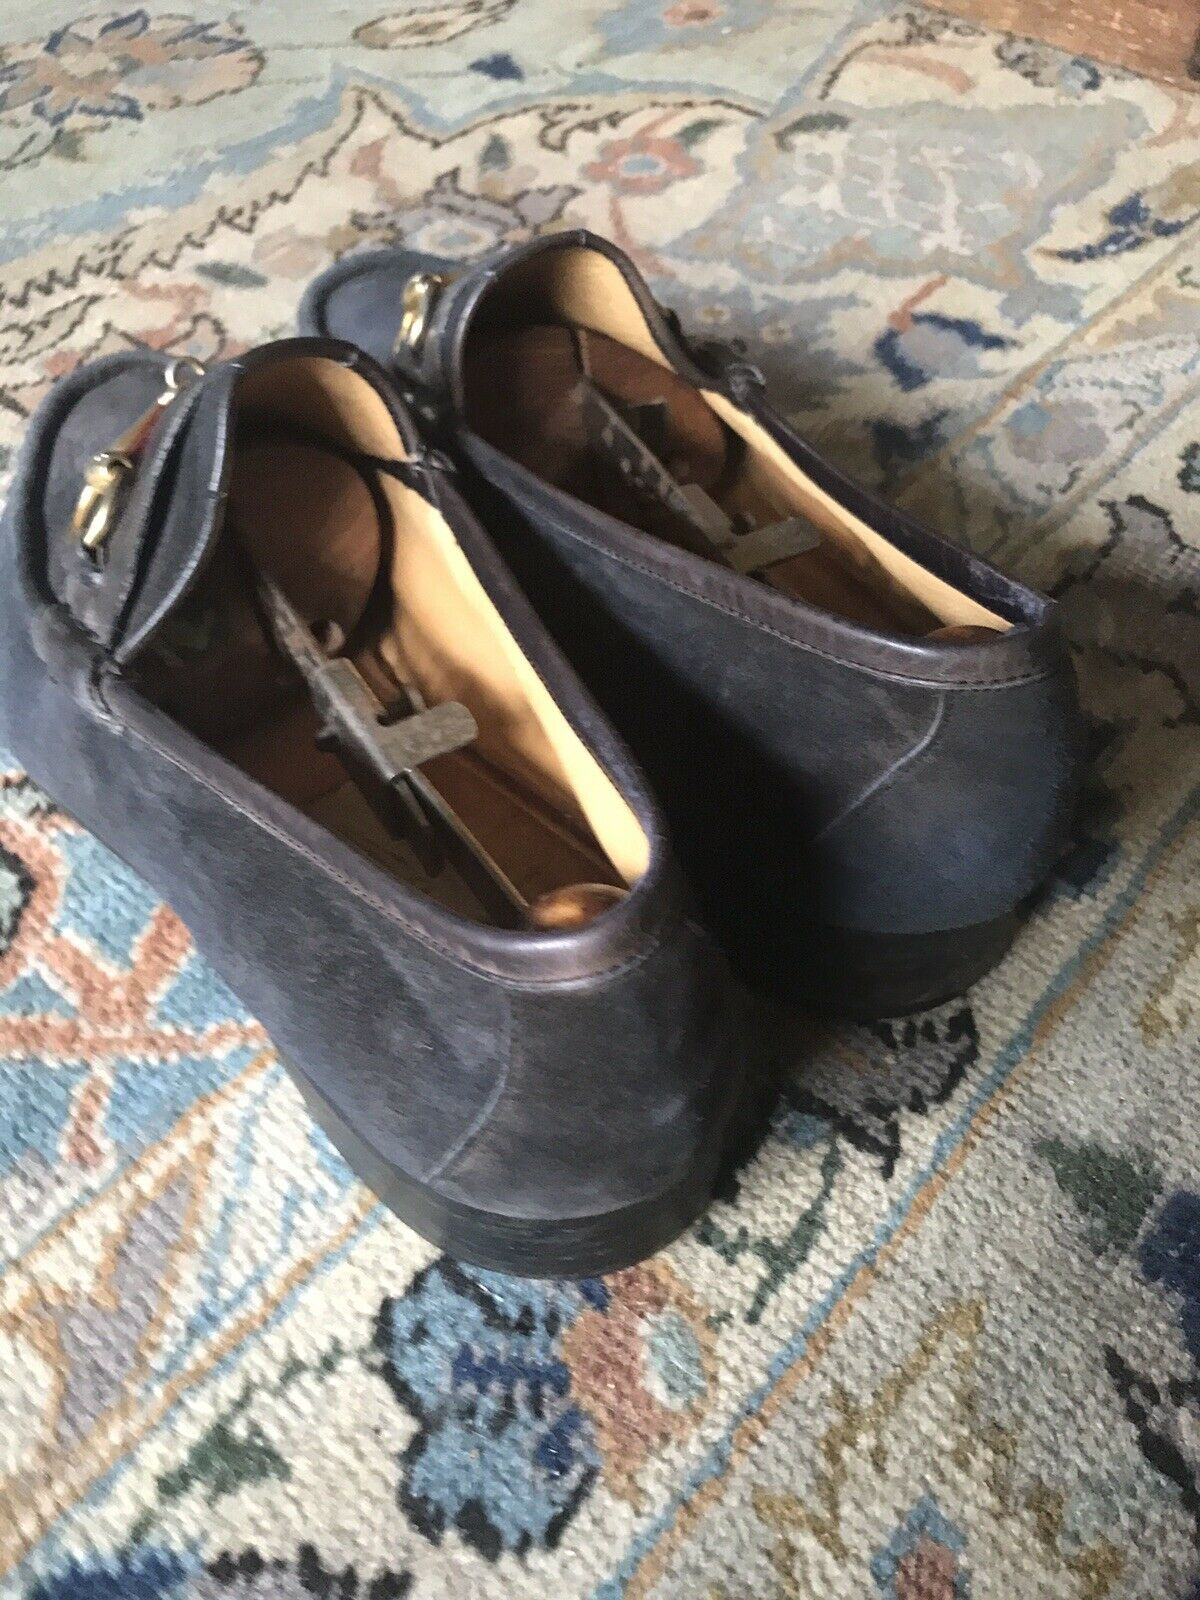 Gucci horsebit suede loafers 45 1/2 - image 4